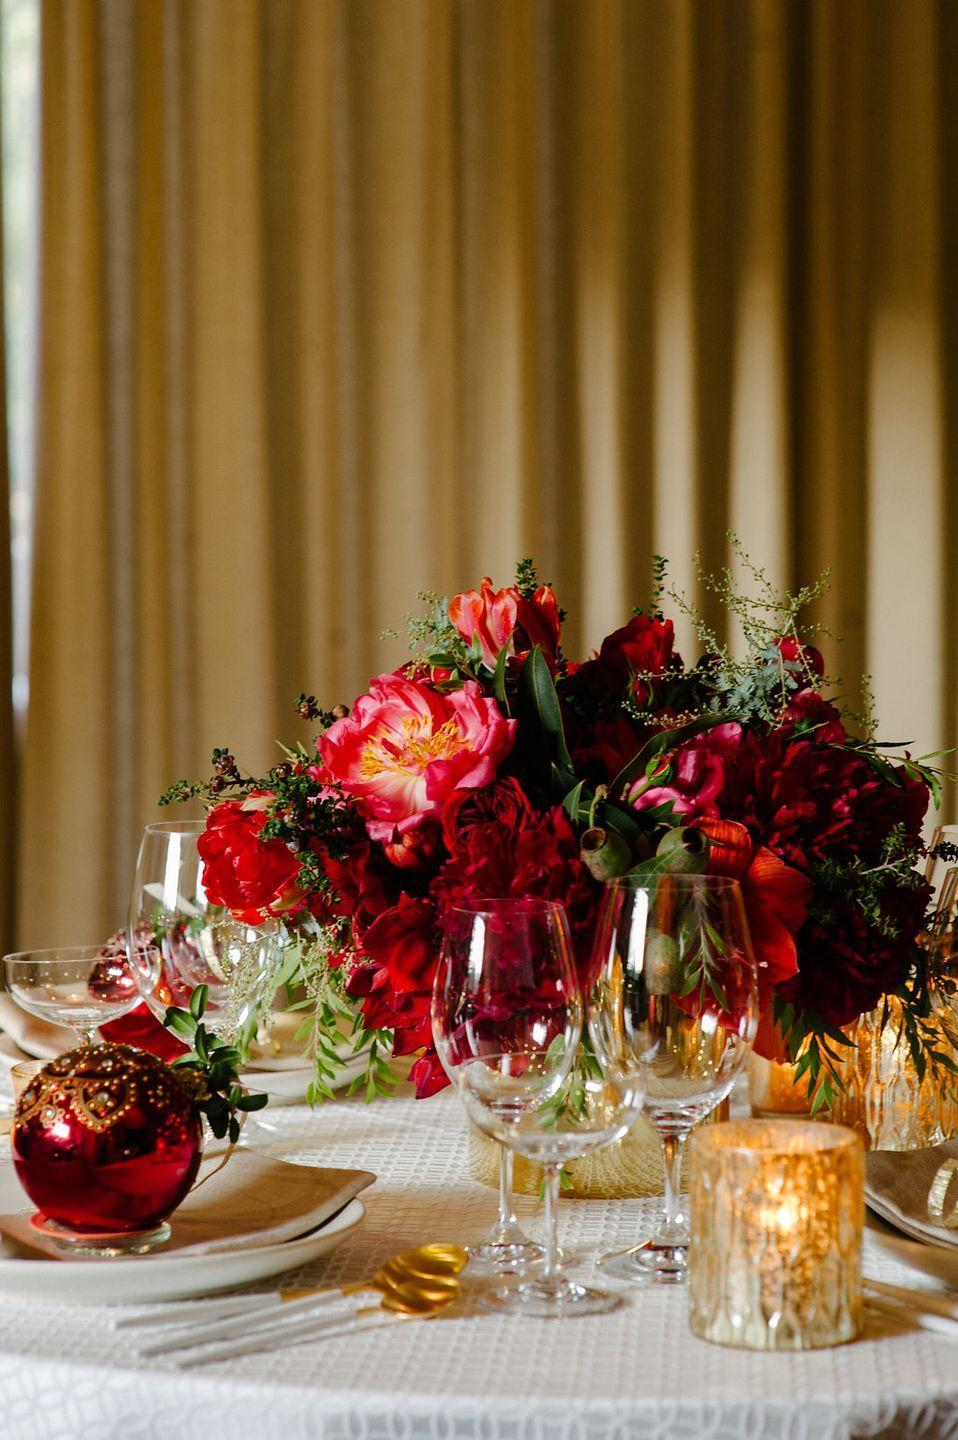 "<p>For a blend of tradition and glam, pair a monochromatic floral centerpiece with matching Christmas bulbs at each place setting. The flowers offer rich texture while the bulbs provide a touch of glimmer. </p><p><em>Via <a href=""http://www.jennalamevents.com/"" rel=""nofollow noopener"" target=""_blank"" data-ylk=""slk:Jenna Lam Events"" class=""link rapid-noclick-resp"">Jenna Lam Events</a></em></p>"